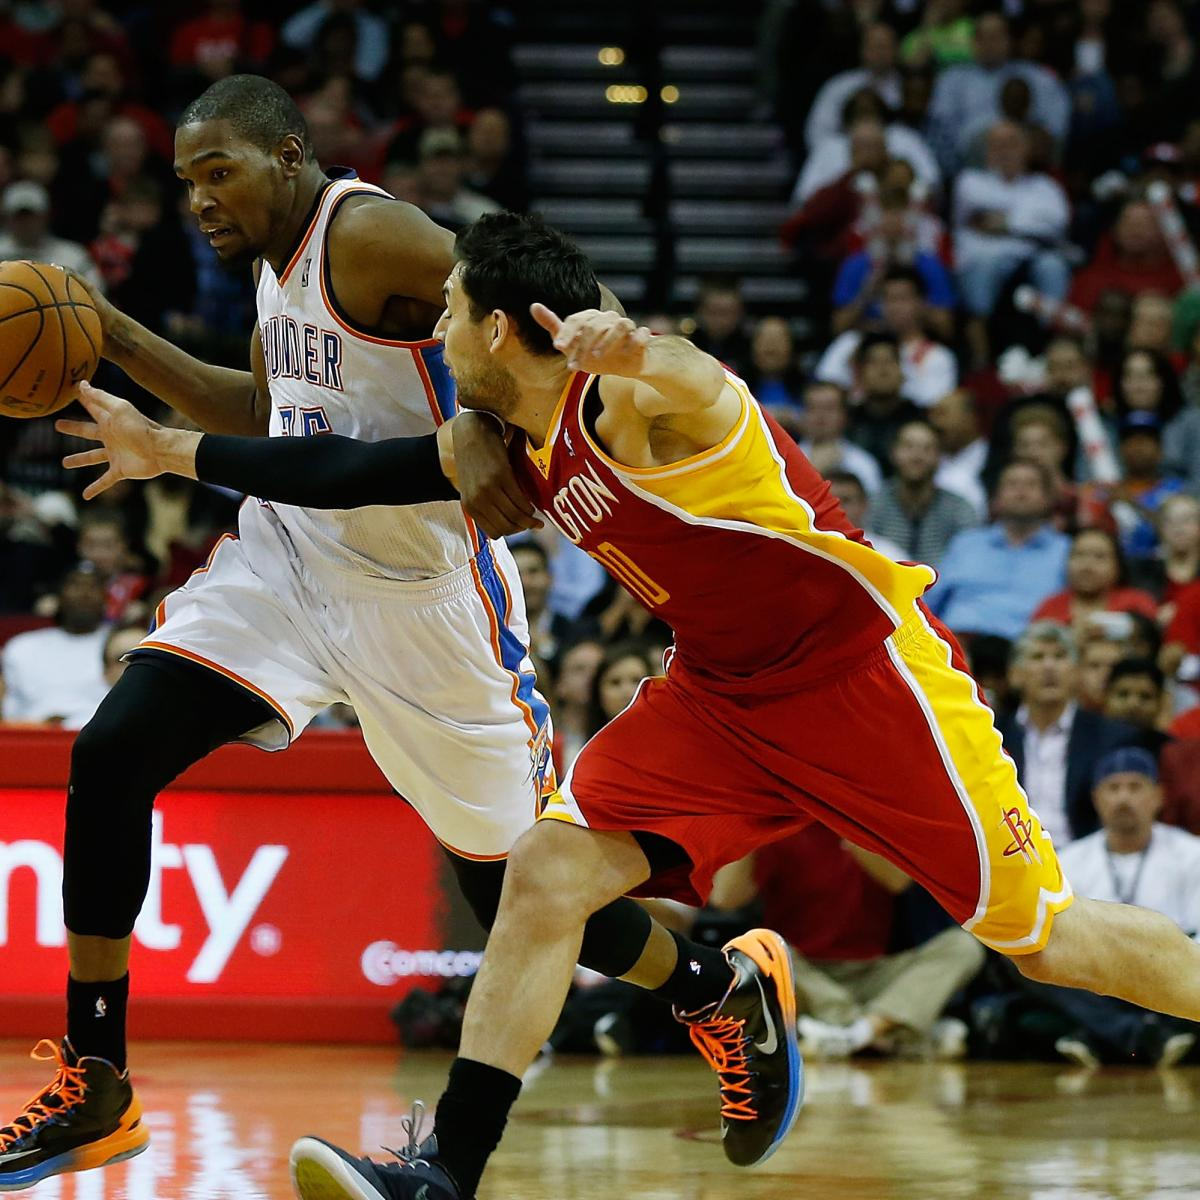 Houston Rockets Vs Denver Nuggets: 2013 NBA Playoff Brackets: First-Round Series That Will